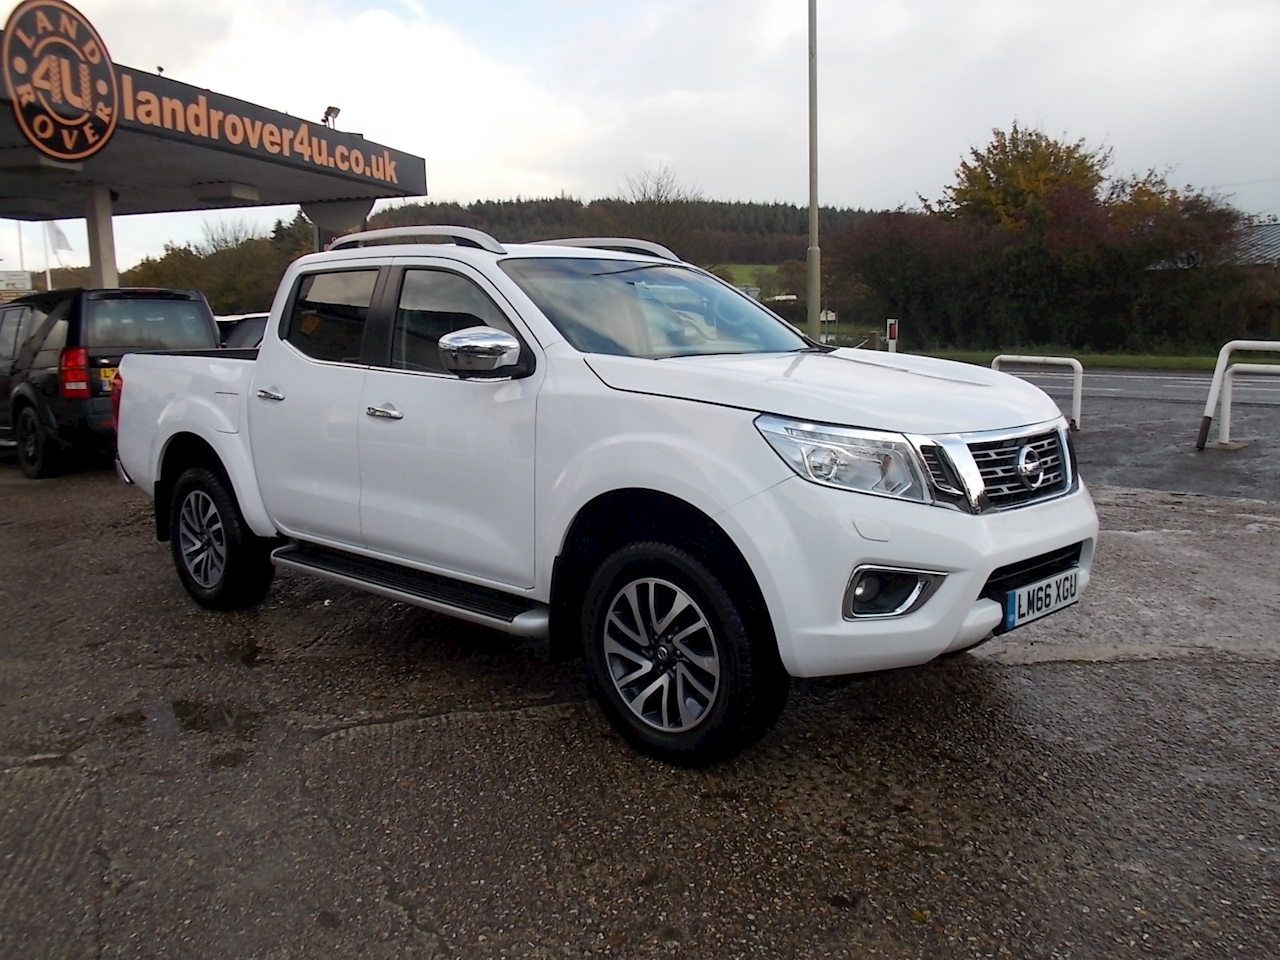 Nissan Navara Dci Tekna 4X4 Shr Dcb Pick-Up 2.3 Manual Diesel